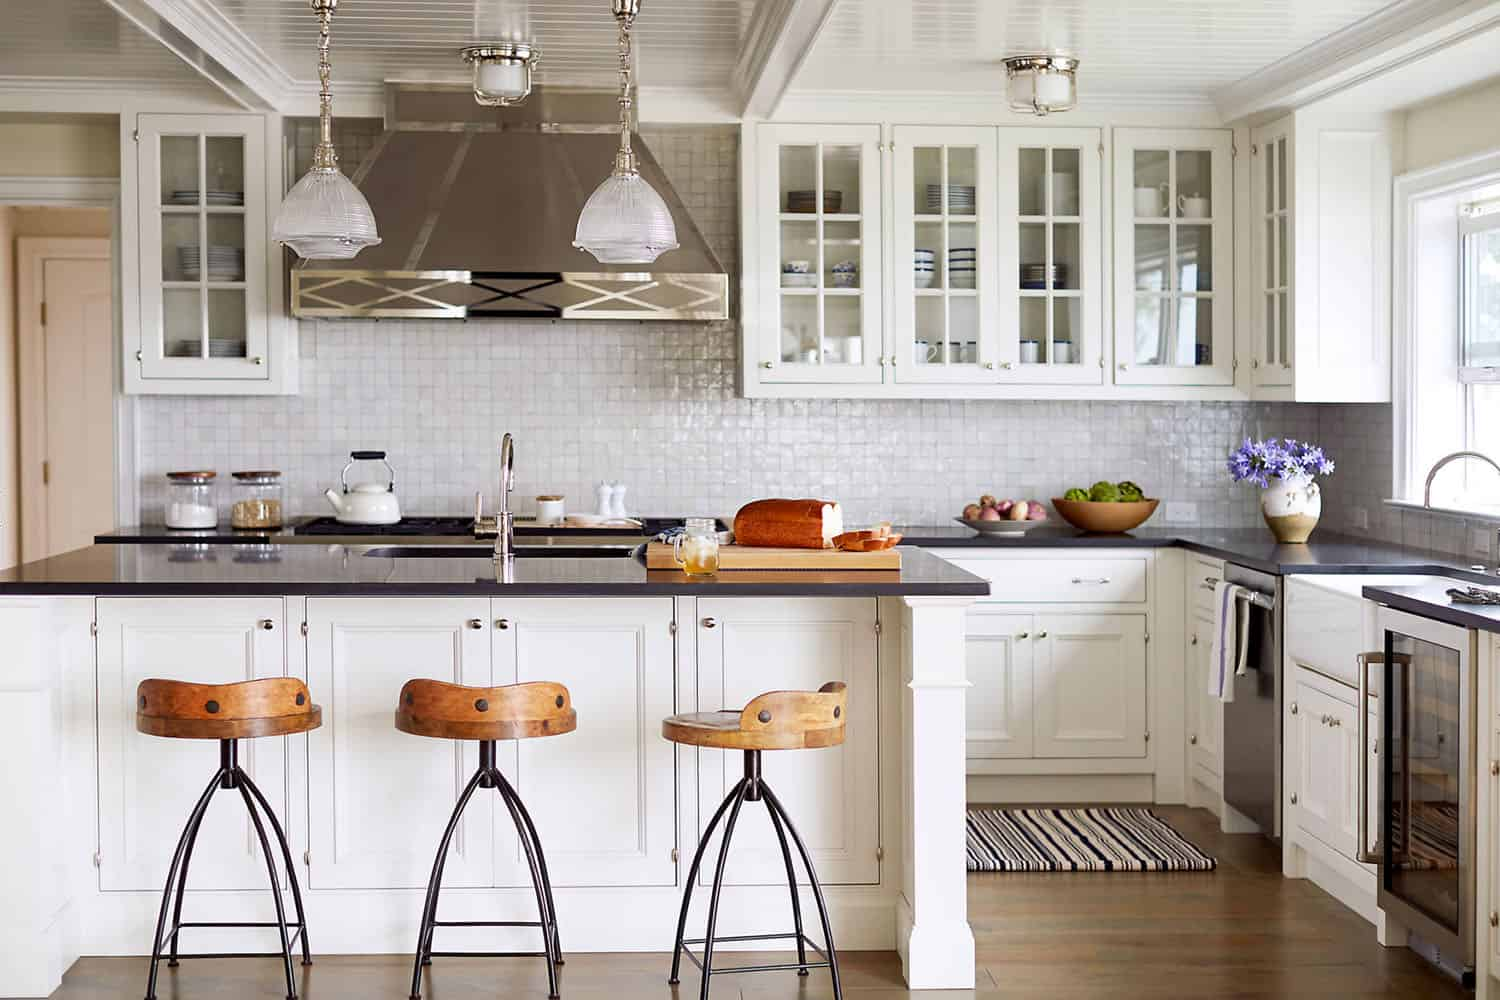 Free up Your Counter Space with These Kitchen Organizing Ideas